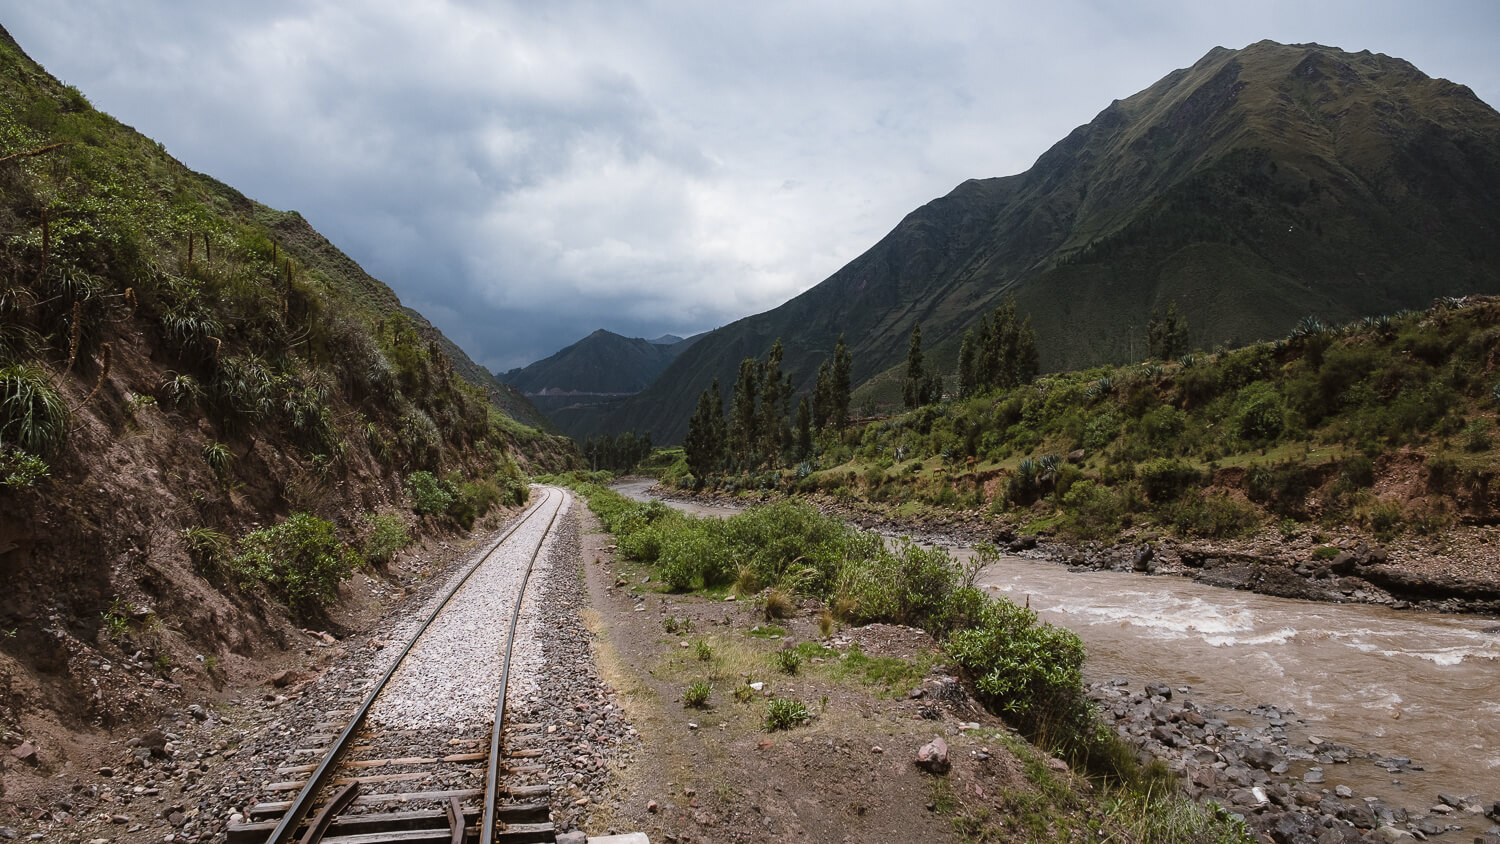 """Views from the back of the train on the Belmond Andean Explorer. Travel photography and guide by © Natasha Lequepeys for """"And Then I Met Yoko"""". #peru #sacredvalley #cusco #laketiticaca #belmondandeanexplorer #perurail #perutrain #luxurytravel #sleepertrain #photoblog #travelblog #travelphotography #fujifilm #andes #travel #travelperu #cuscotolaketiticaca #spiritofthelake #belmond #puno #southamerica"""